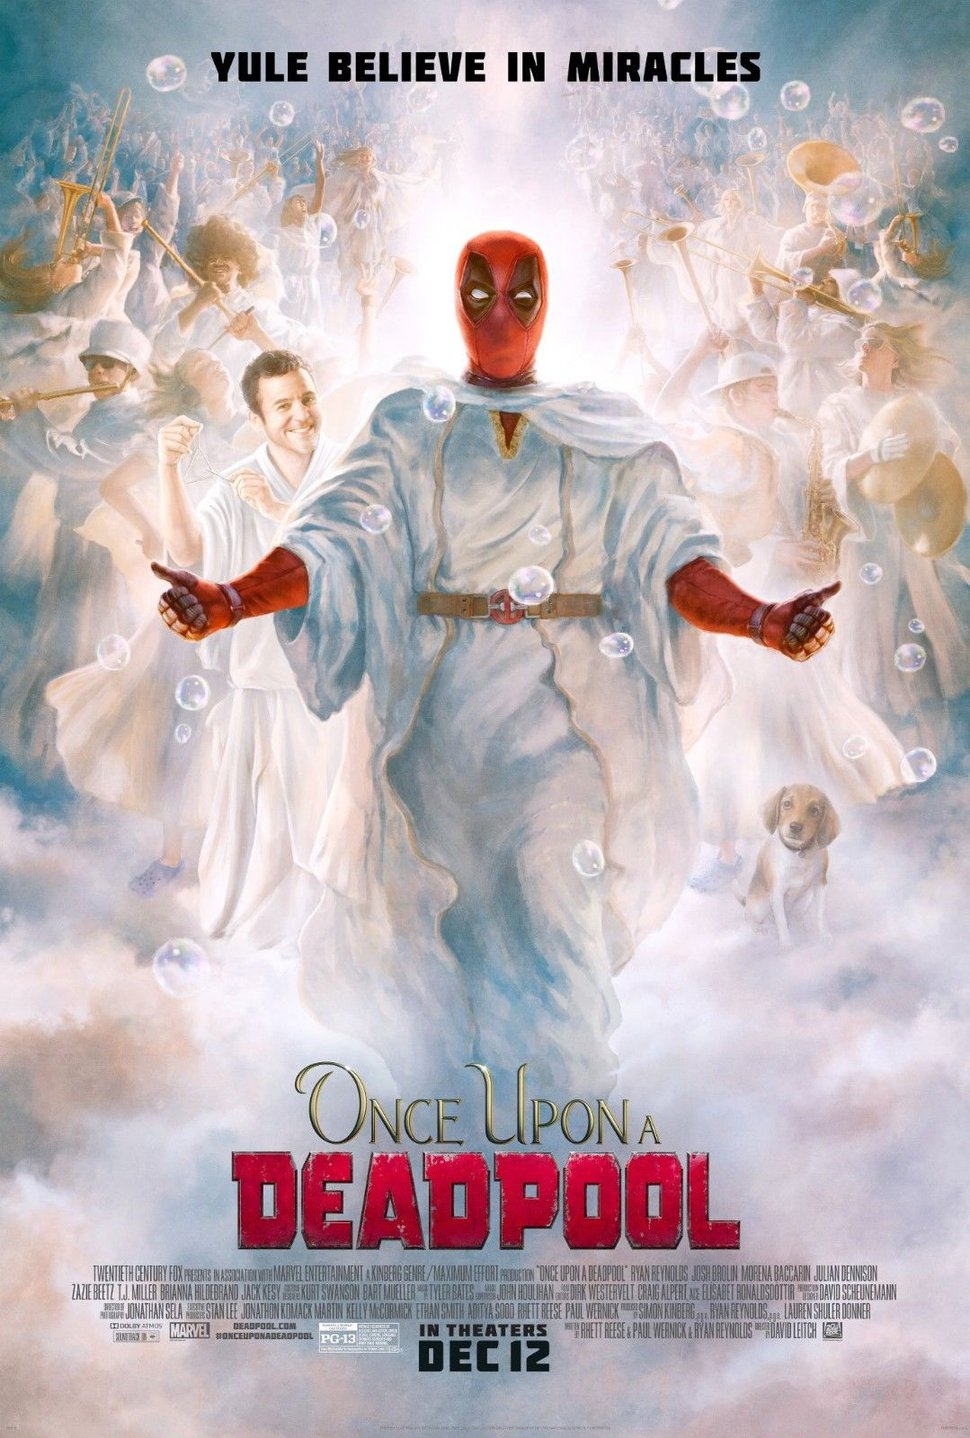 Online petition claims 'Deadpool' poster is 'religious discrimination' against Latter-day Saints